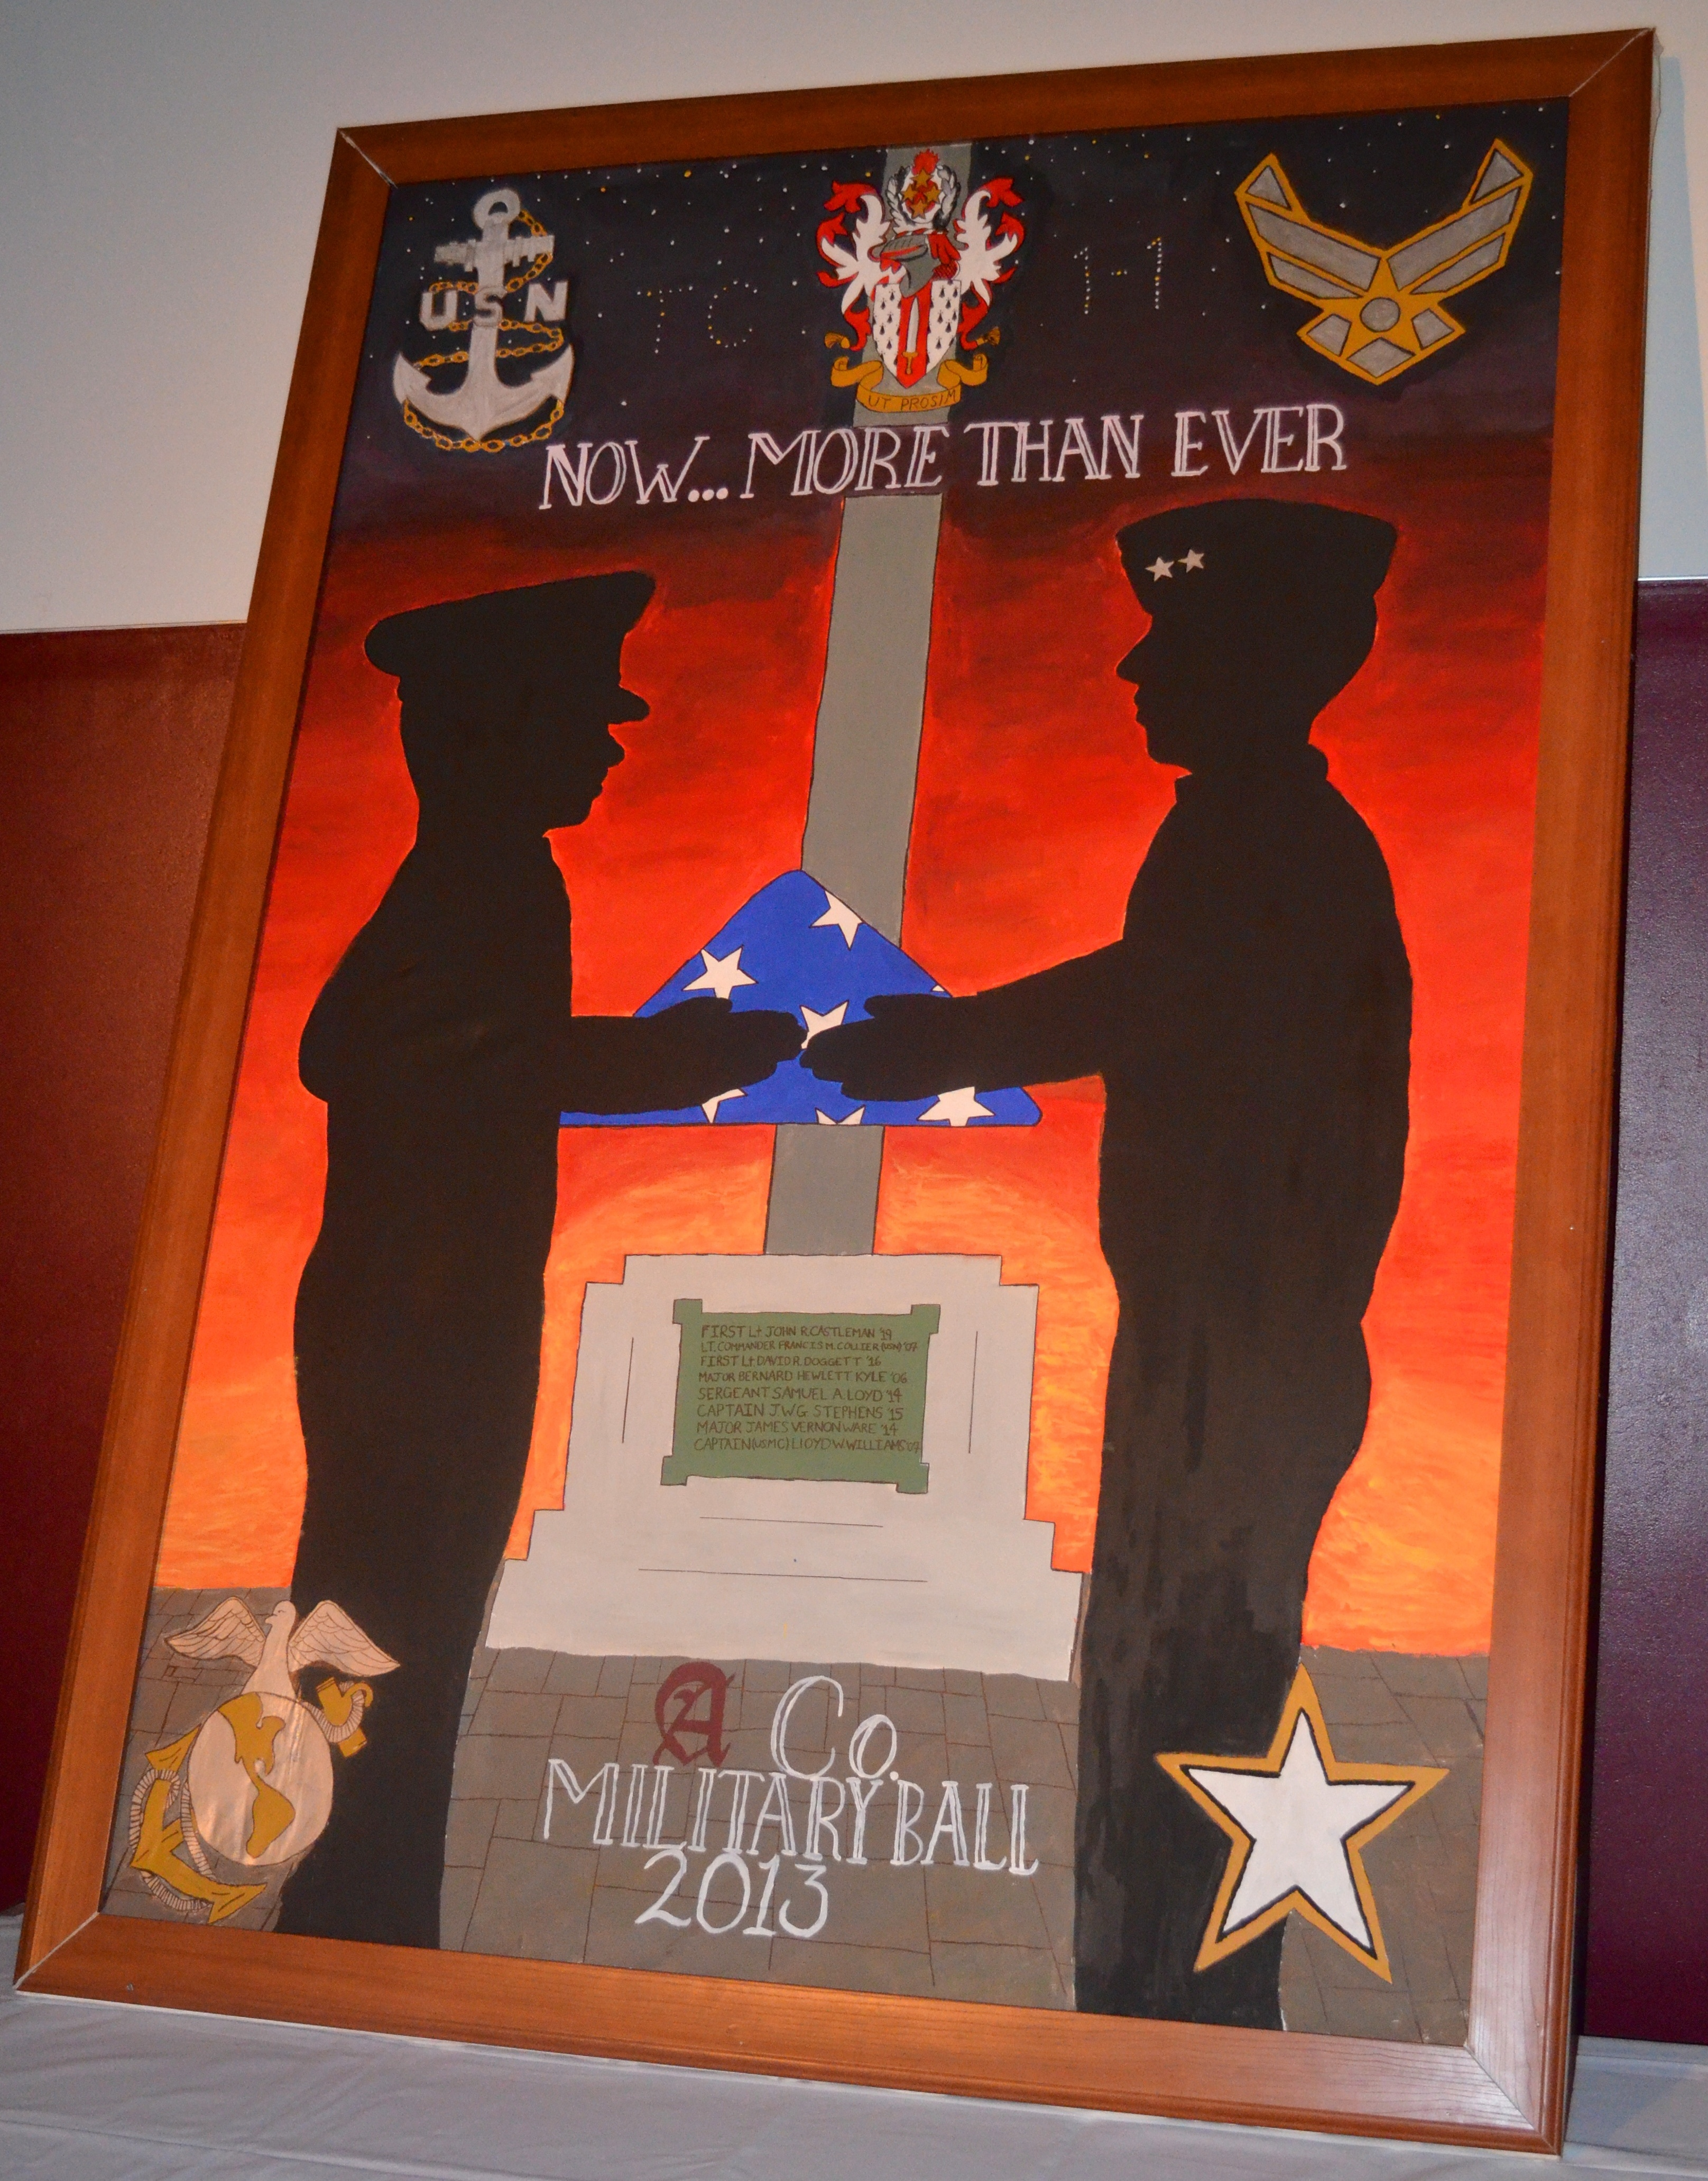 Each year the first year cadets from each company create a banner focusing on the theme of the Military Ball. This is the 2013 banner for Alpha Company.